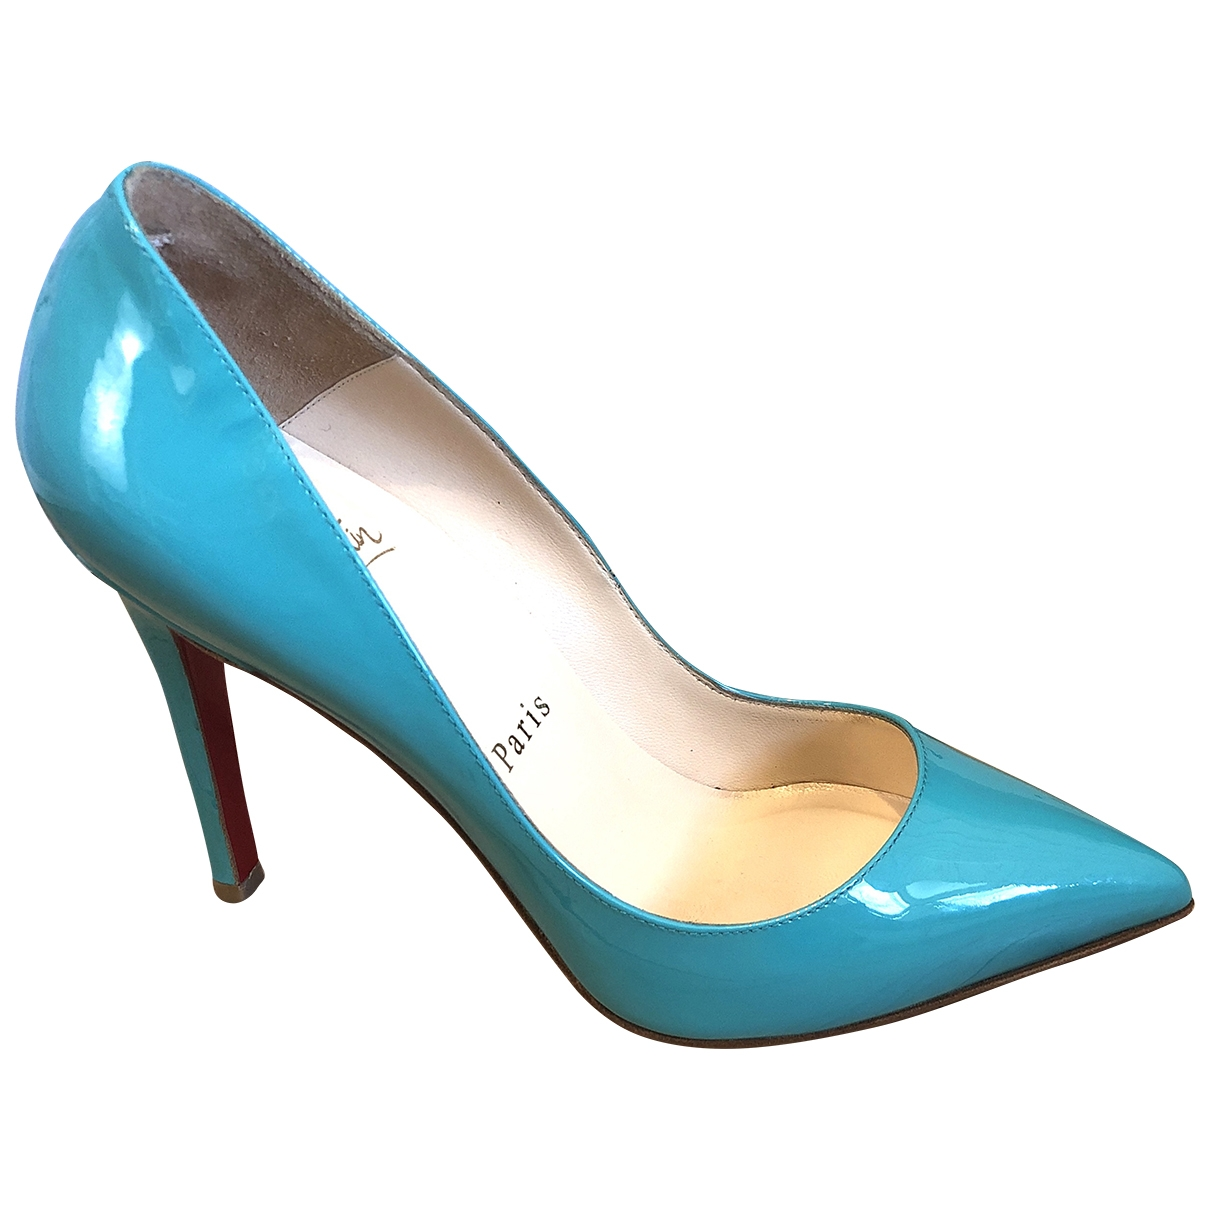 Christian Louboutin Pigalle Turquoise Patent leather Heels for Women 36 EU